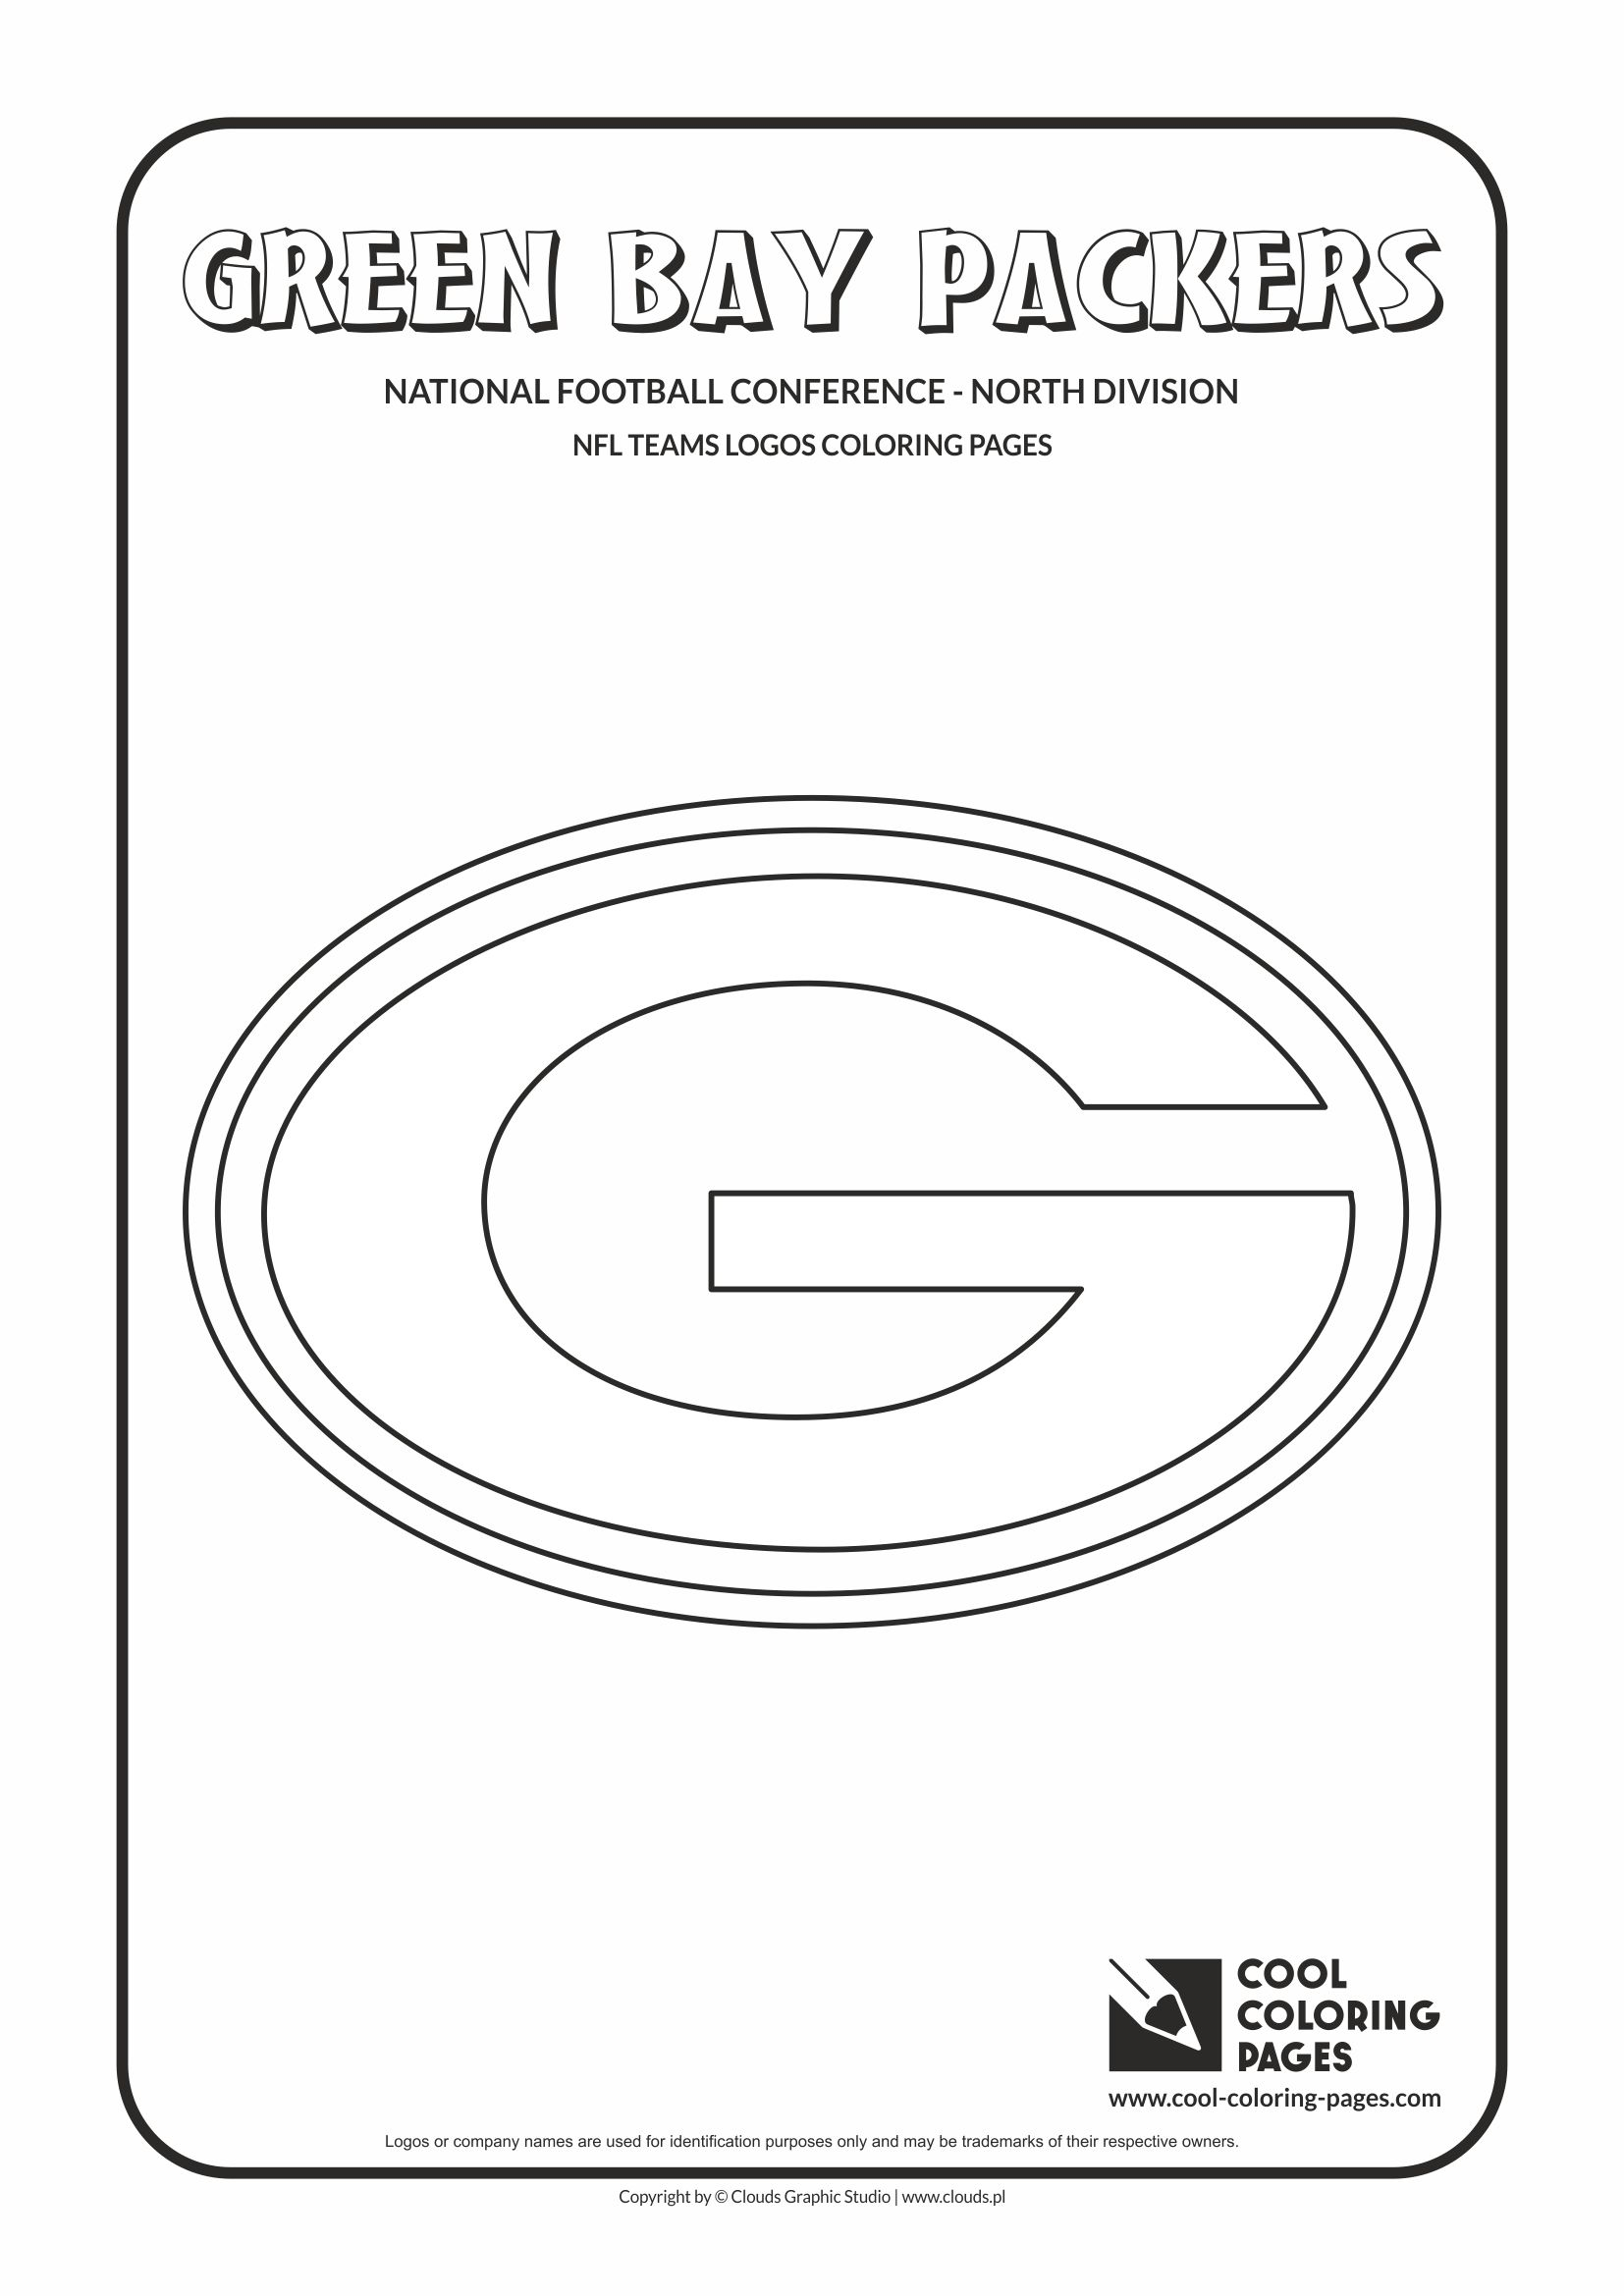 Cool Coloring Pages - NFL American Football Clubs Logos - National Football Conference - North Division / Green Bay Packers logo / Coloring page with Green Bay Packers logo